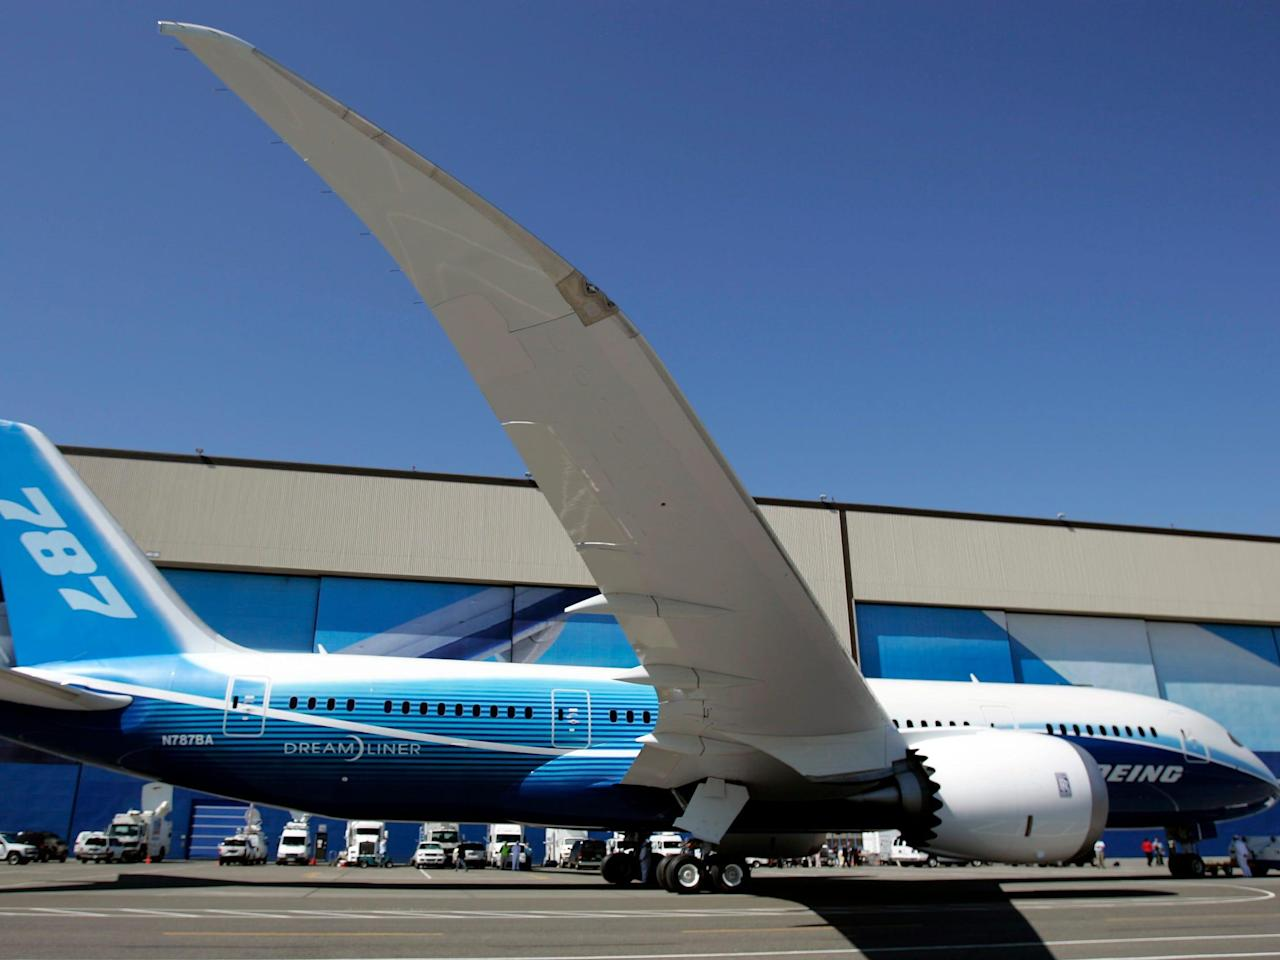 Boeing's revolutionary 787 Dreamliner has changed air travel forever. Here's how the company left competitors in the dust with a risky $8 billion bet.